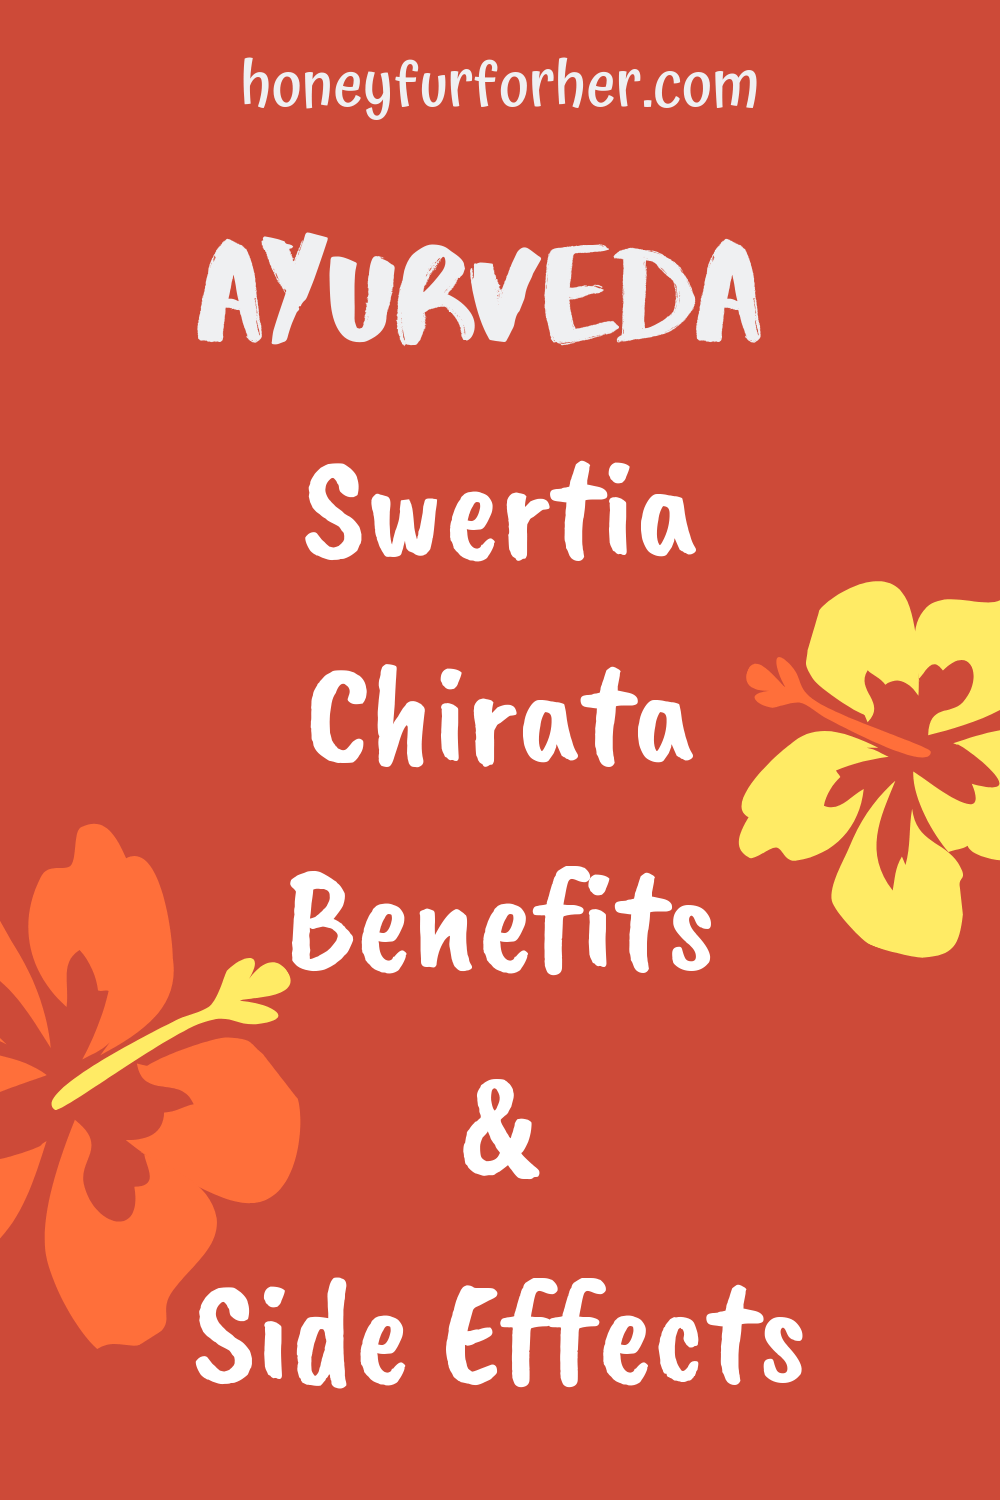 Swertia Chirata Benefits And Side Effects Pinterent Pin Graphic